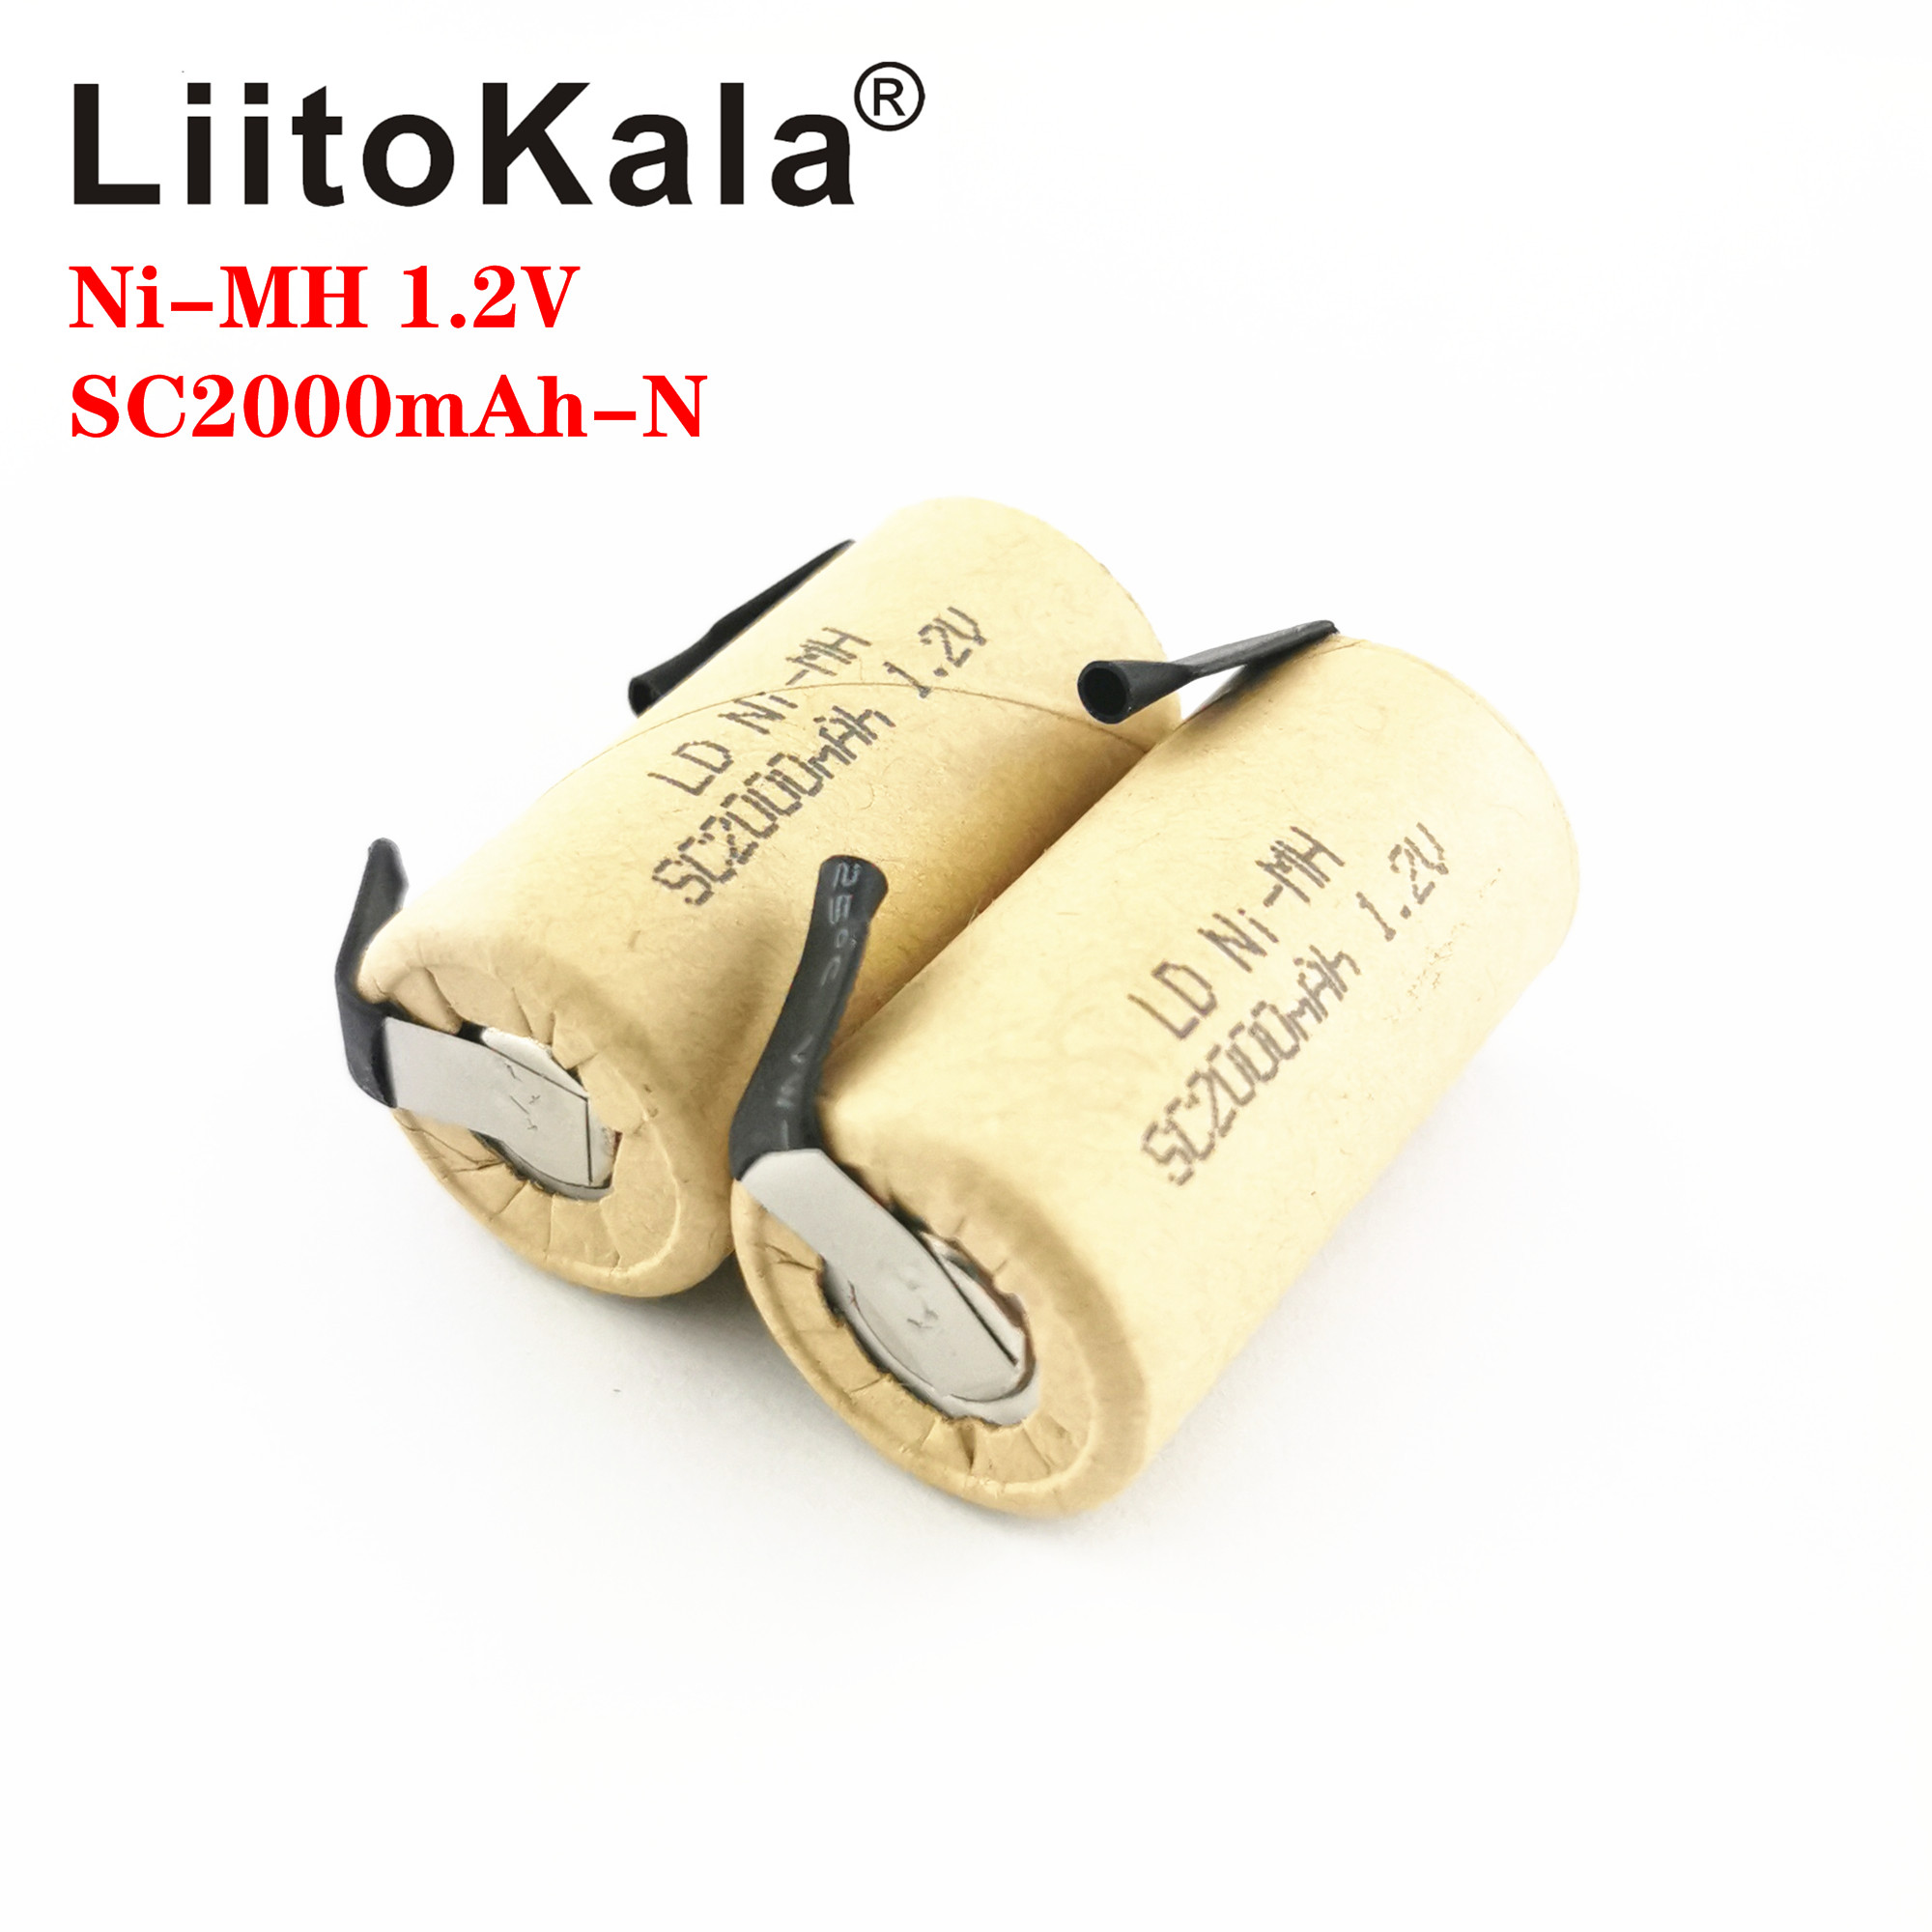 LiitoKala <font><b>Ni</b></font>-<font><b>MH</b></font> <font><b>1.2V</b></font> SC 2000mAh <font><b>Ni</b></font> <font><b>MH</b></font> high power tool battery cell discharge rate 10C rechargeable batteries cells DIY nicke image